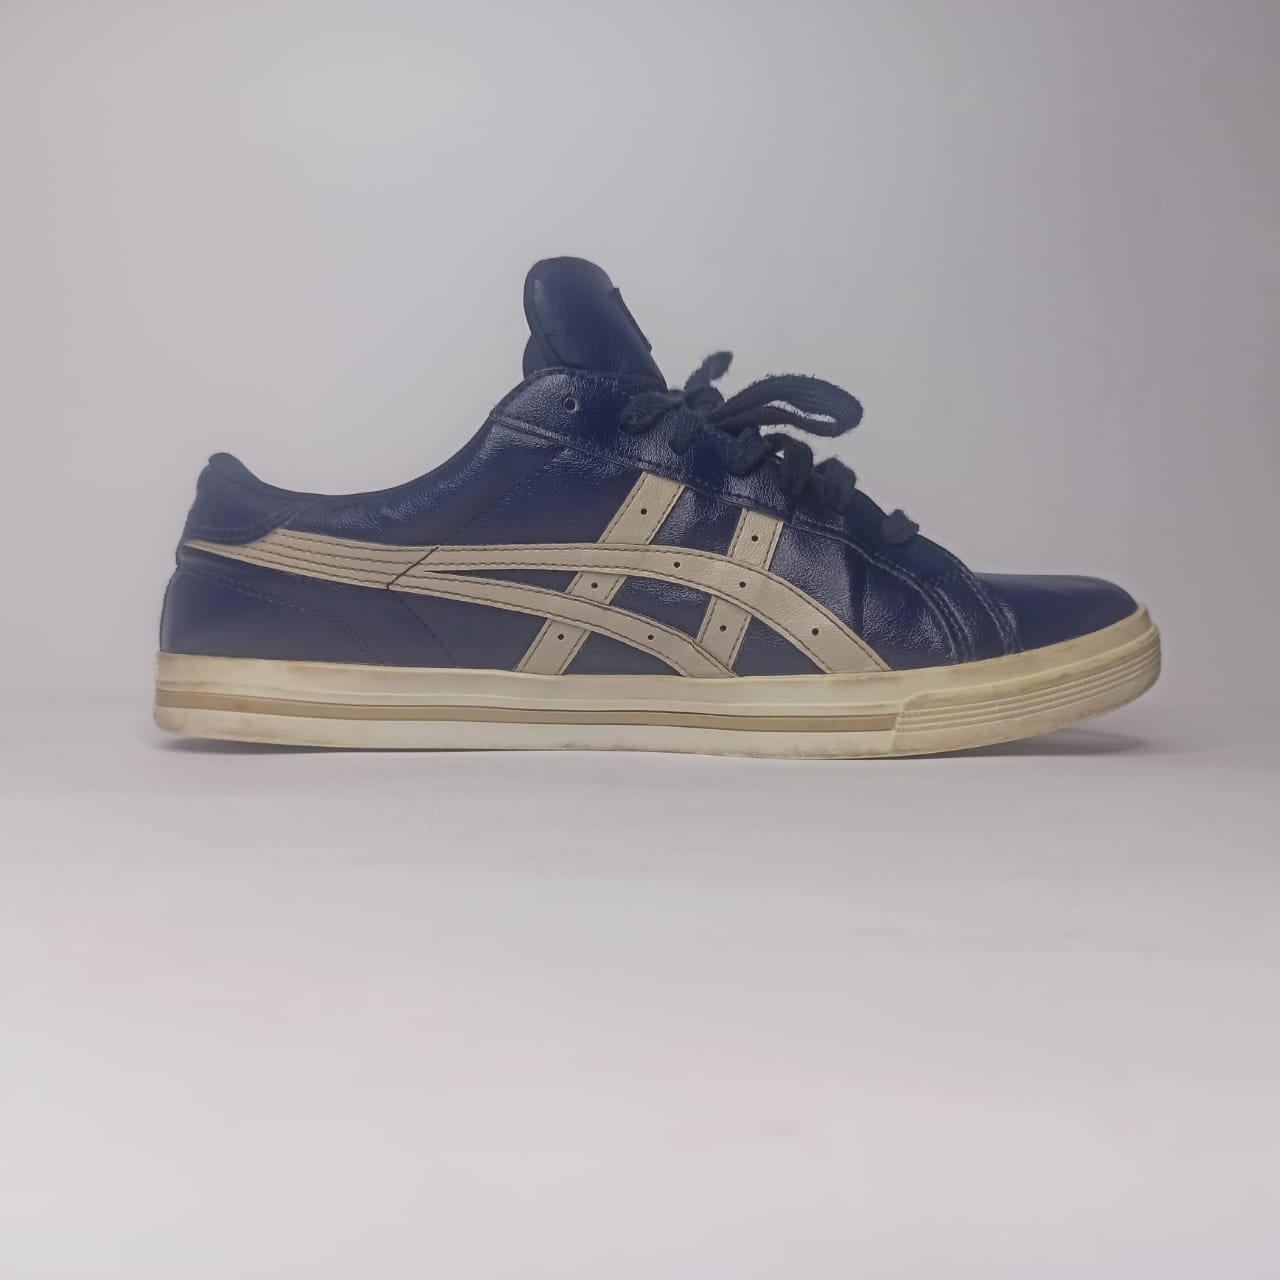 Asics In Blue, Size U.S.# 9-UK# 8- PAK# 42.5